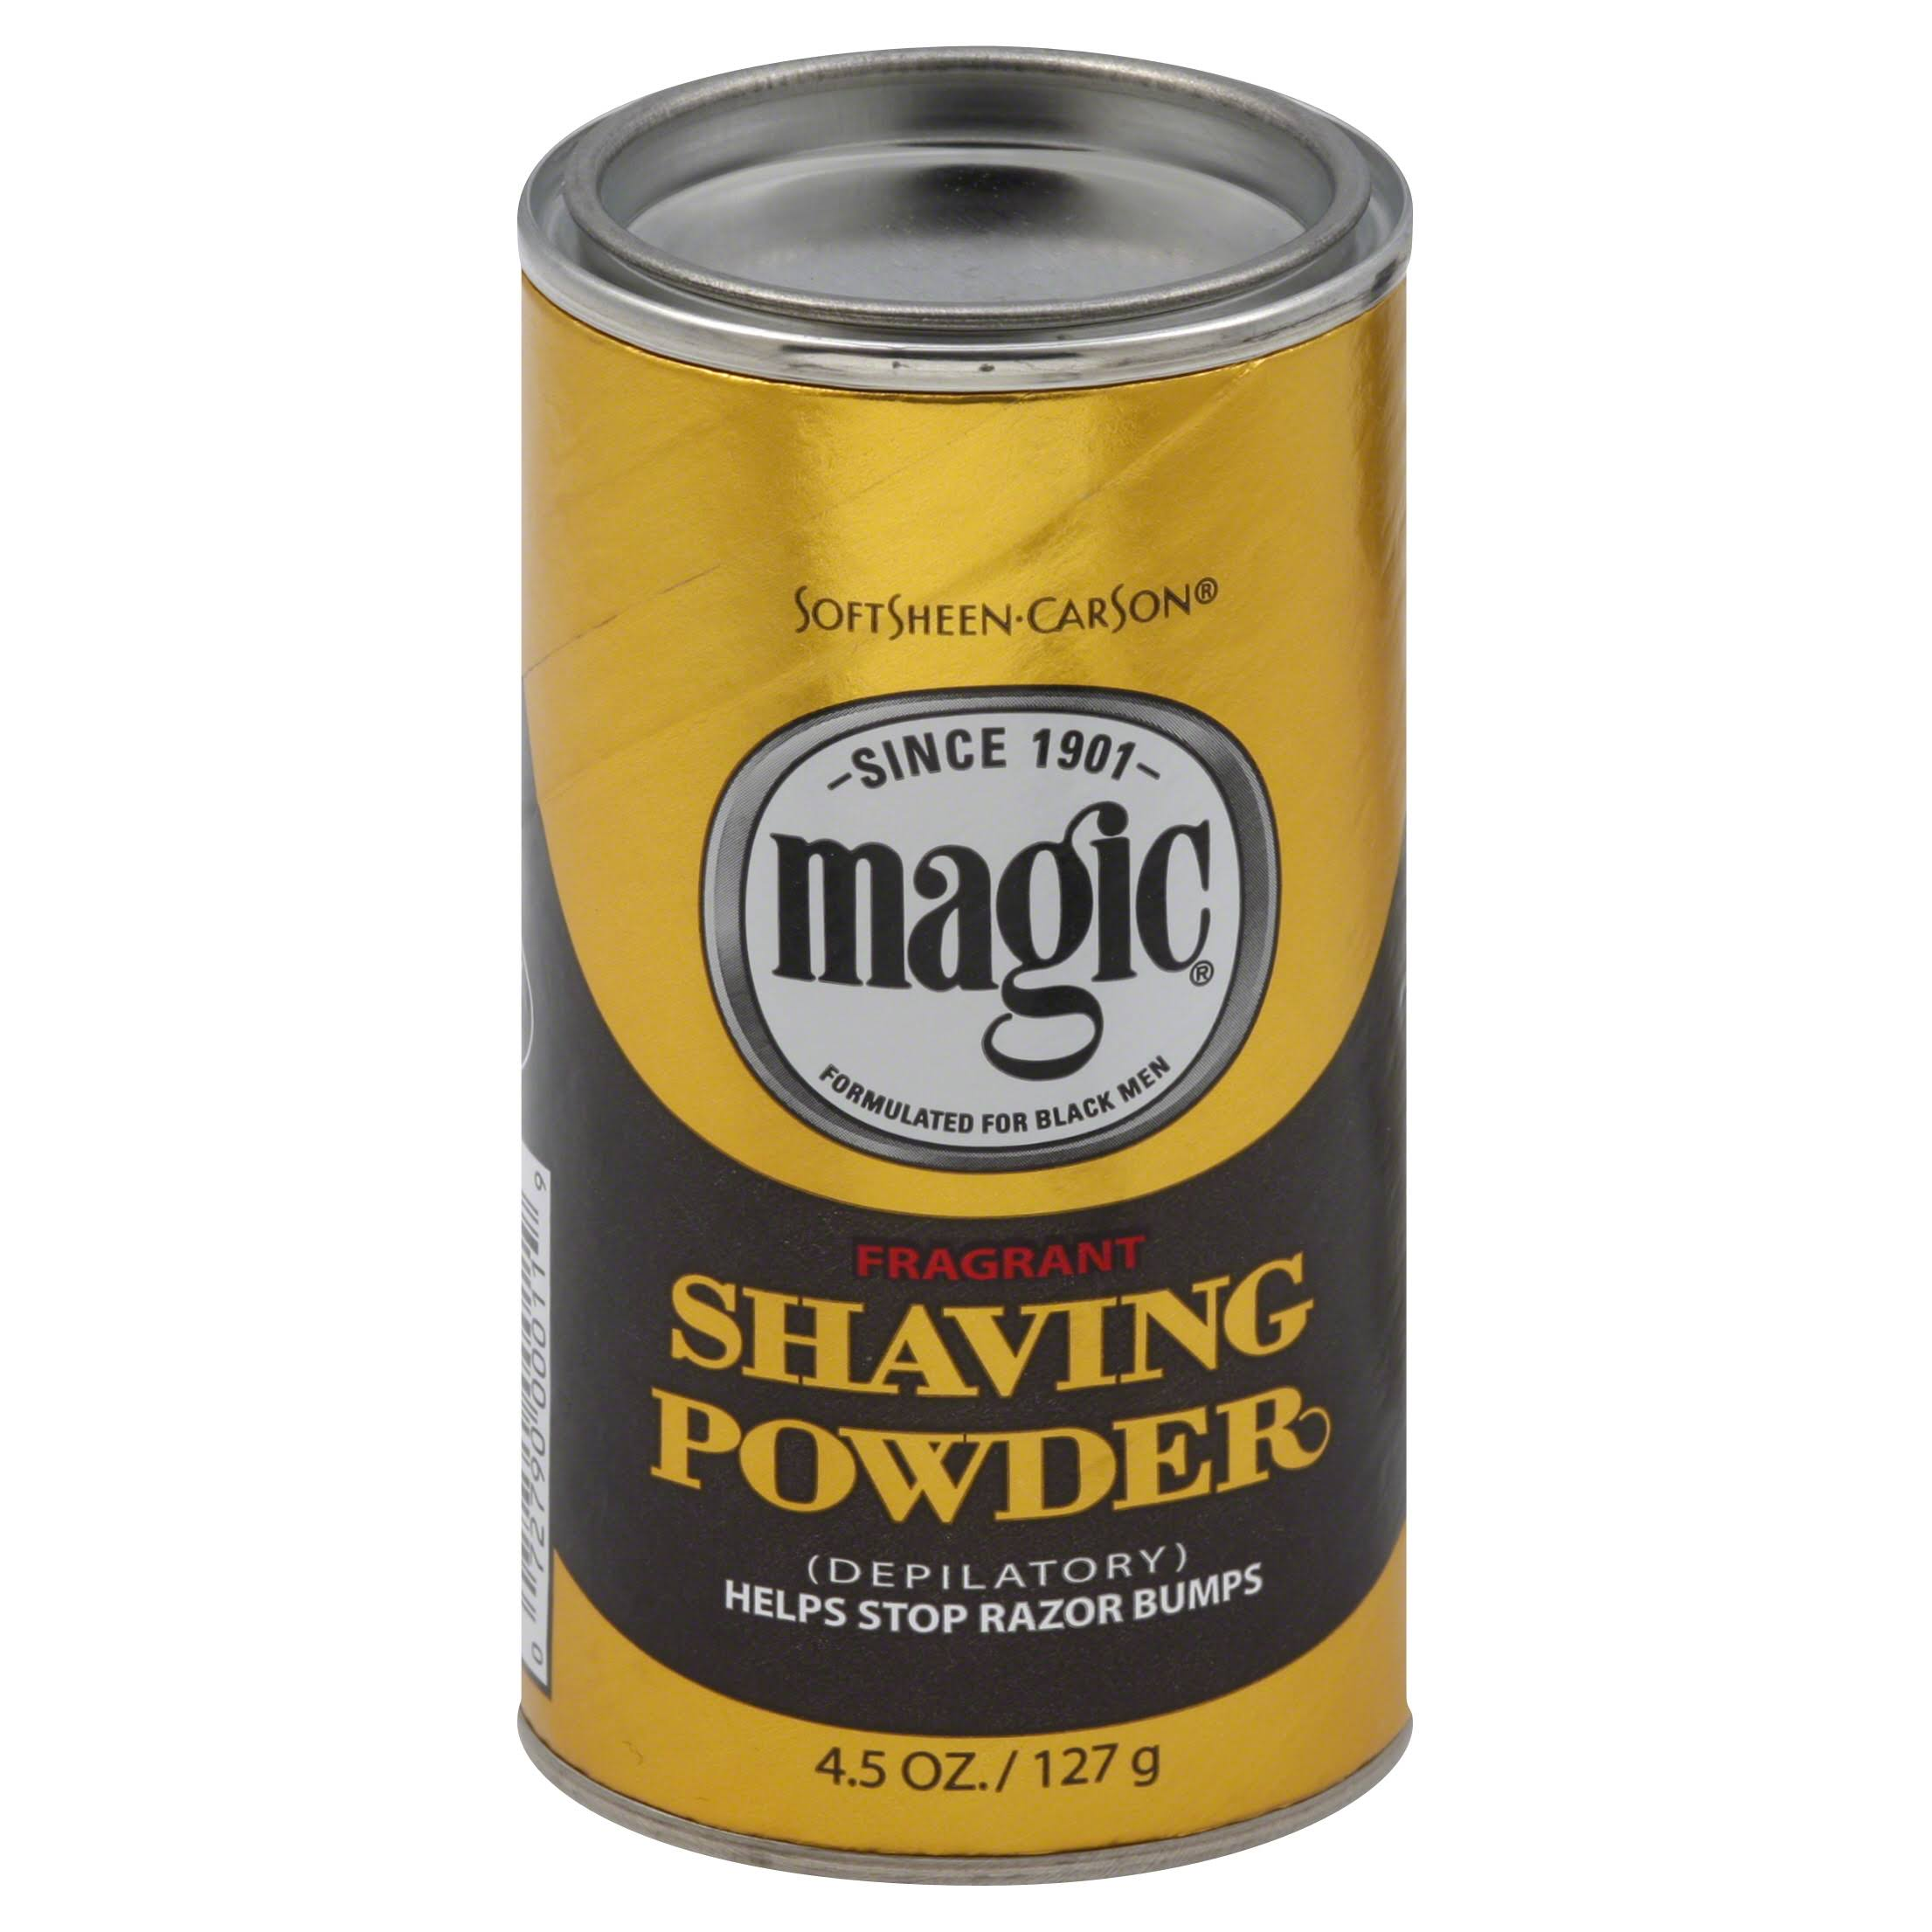 Magic Fragrant Shaving Powder - 127g